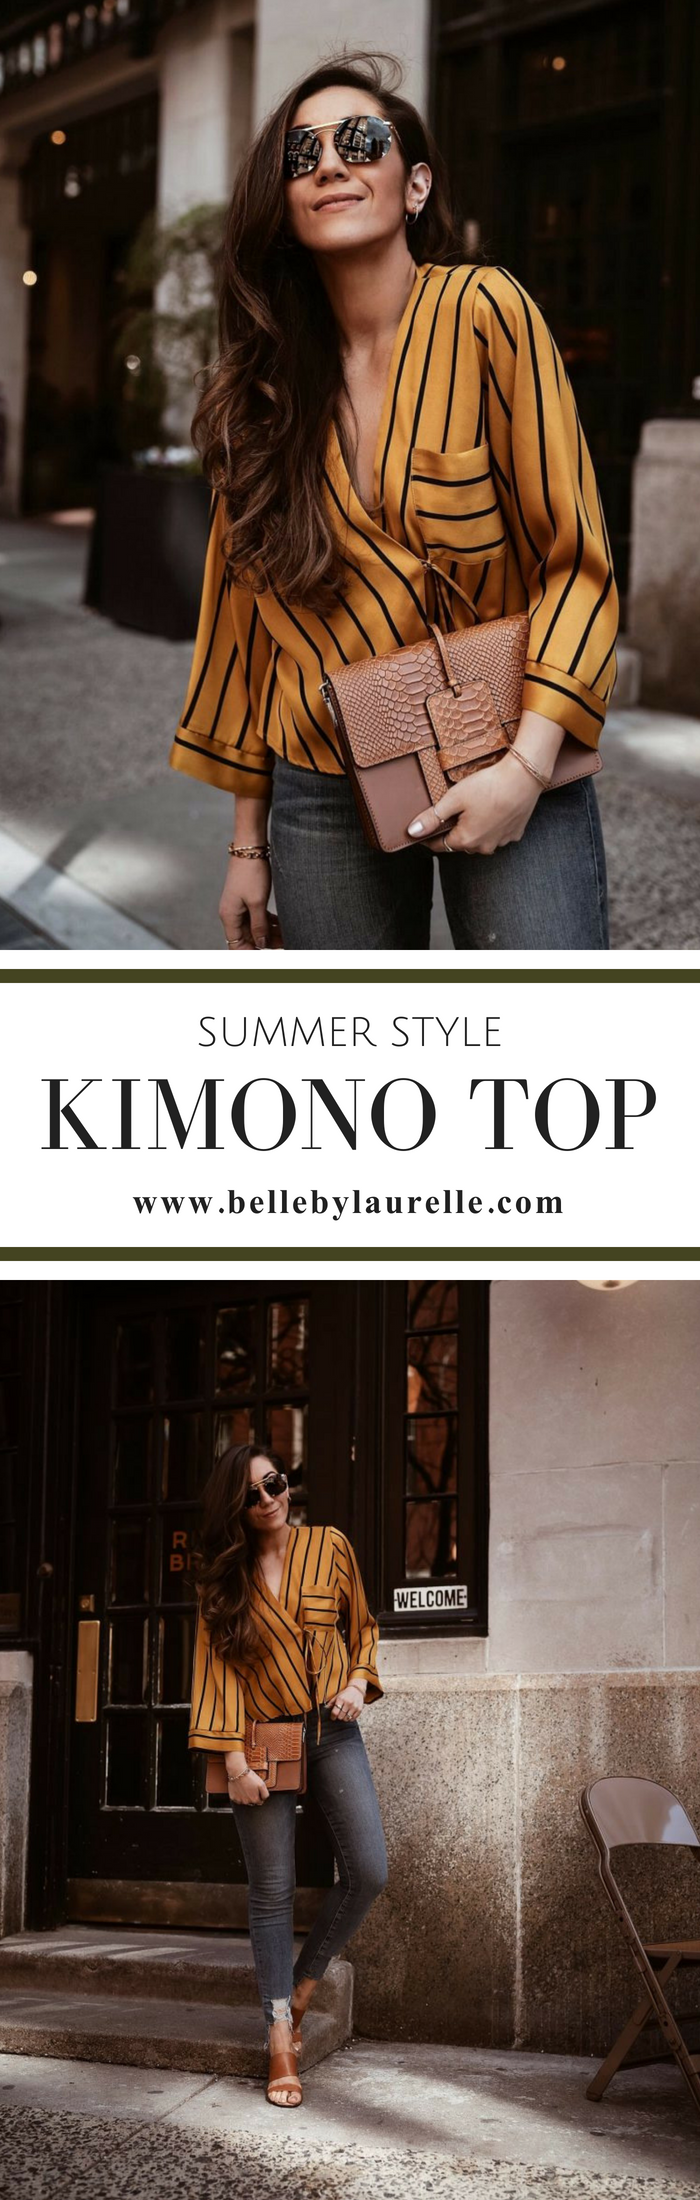 Belle by Laurelle Summer Style Kimono Top